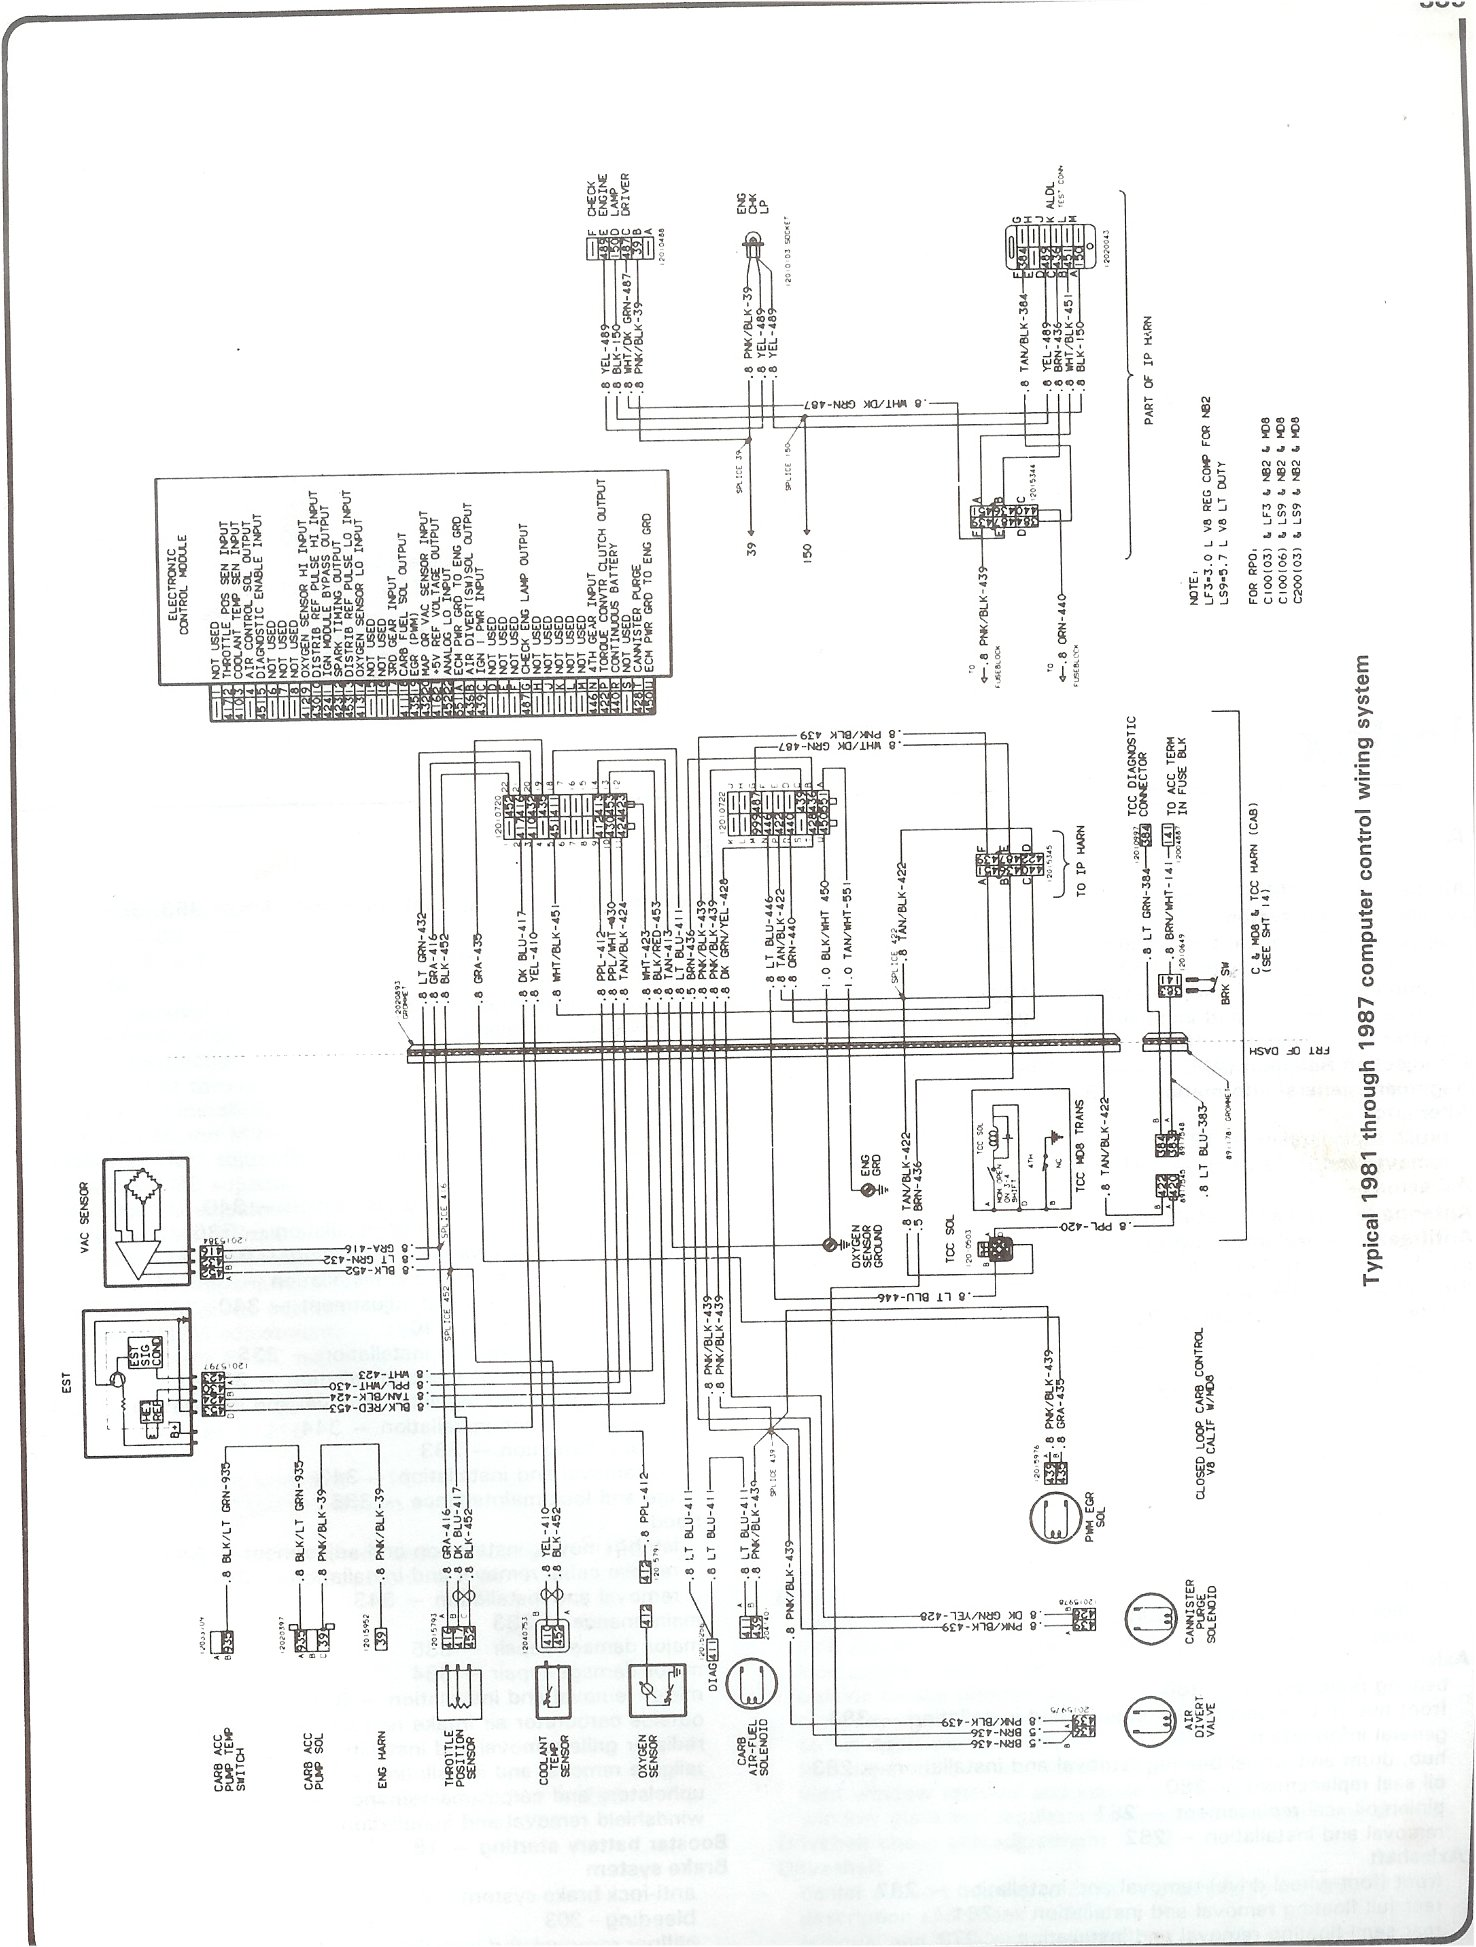 75 Truck Wiring Harness Diagram - 2010 Fusion Fuse Box - fisher-wire .2010menanti.jeanjaures37.frWiring Diagram